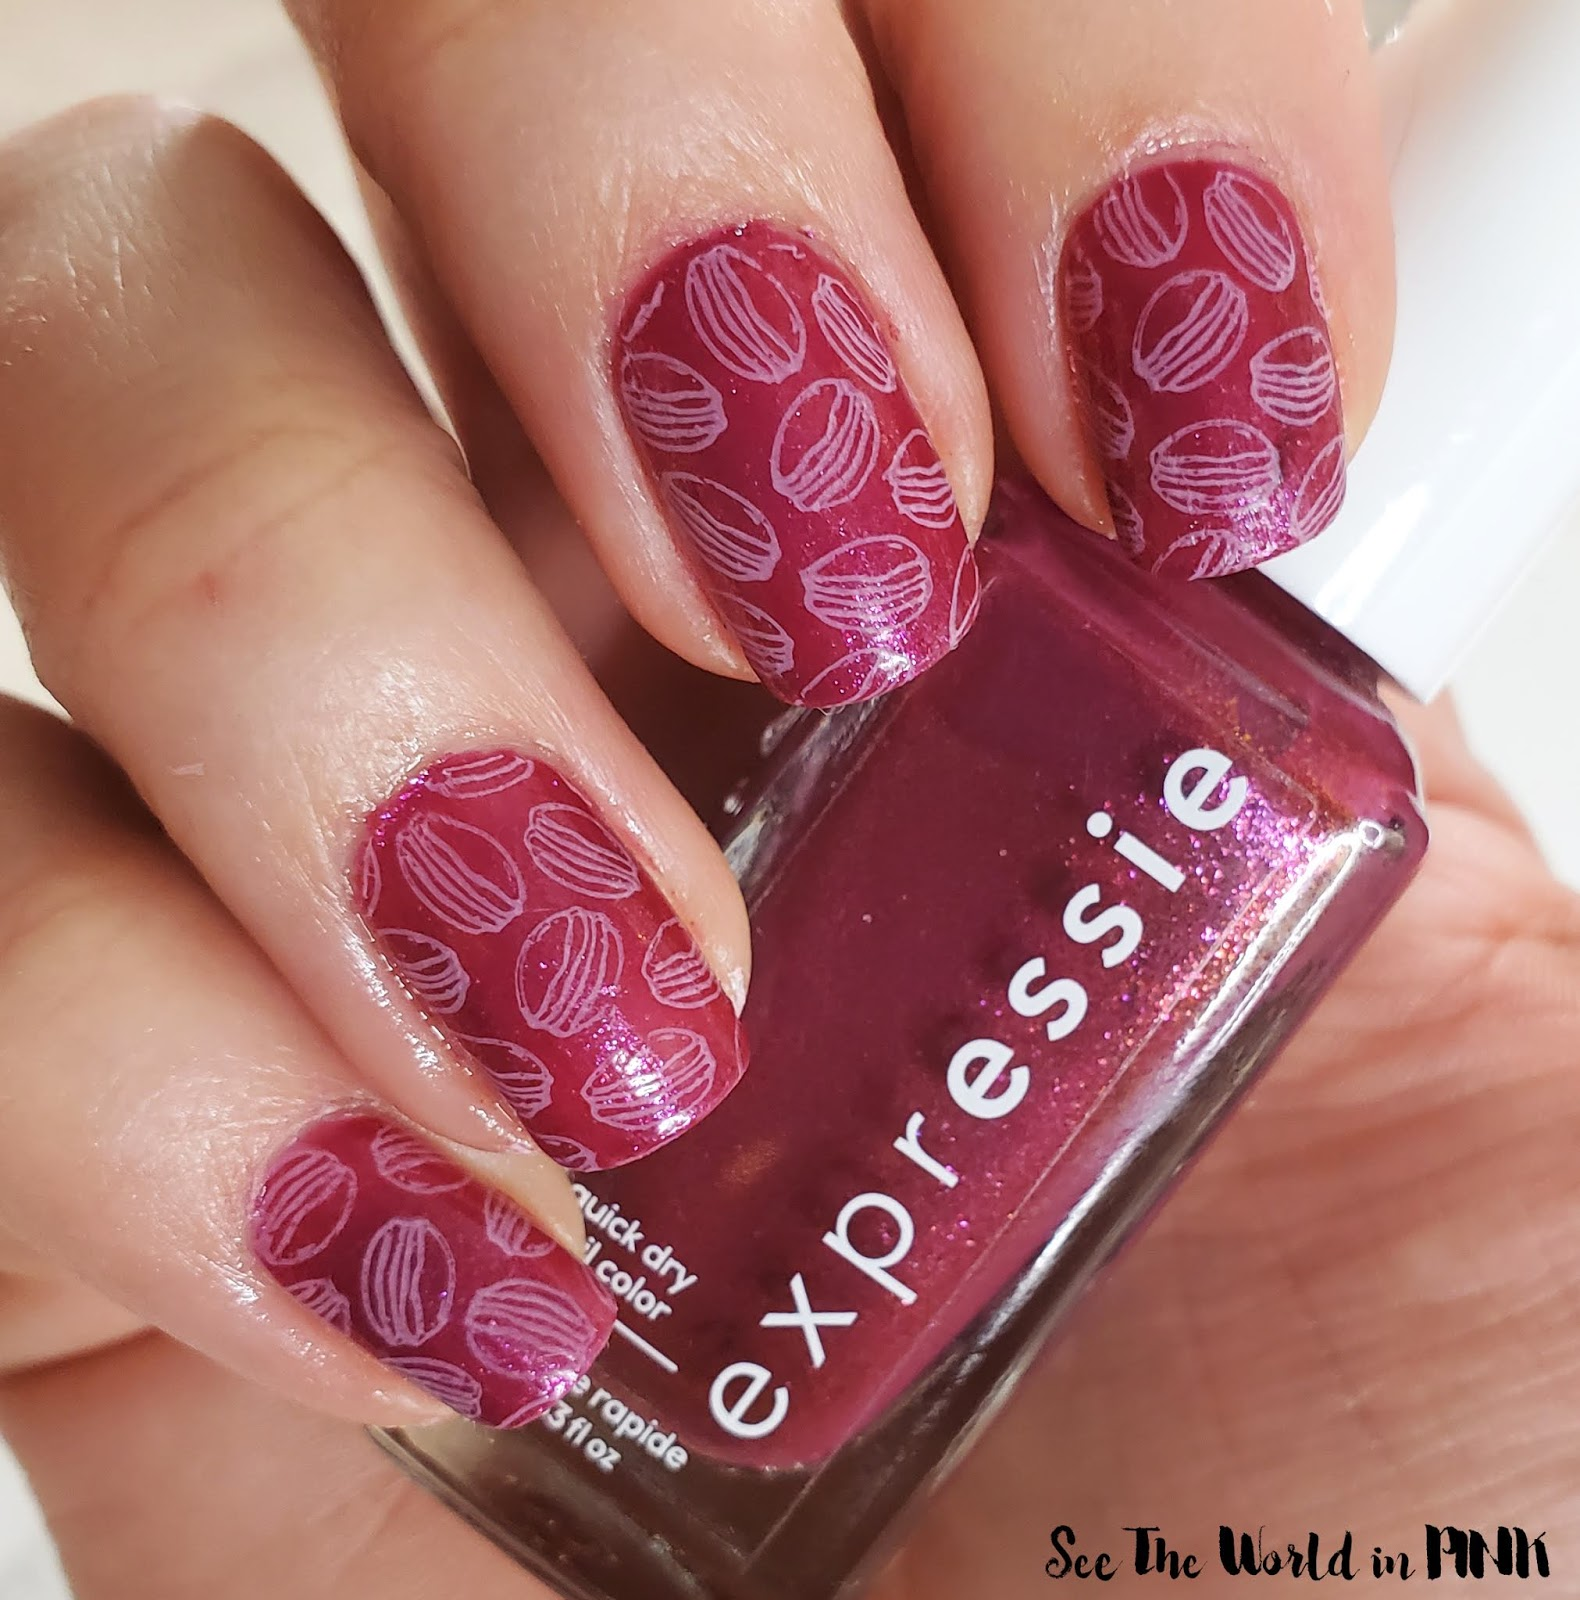 Manicure Monday - Essie Expressie and Pink Stamped Macarons